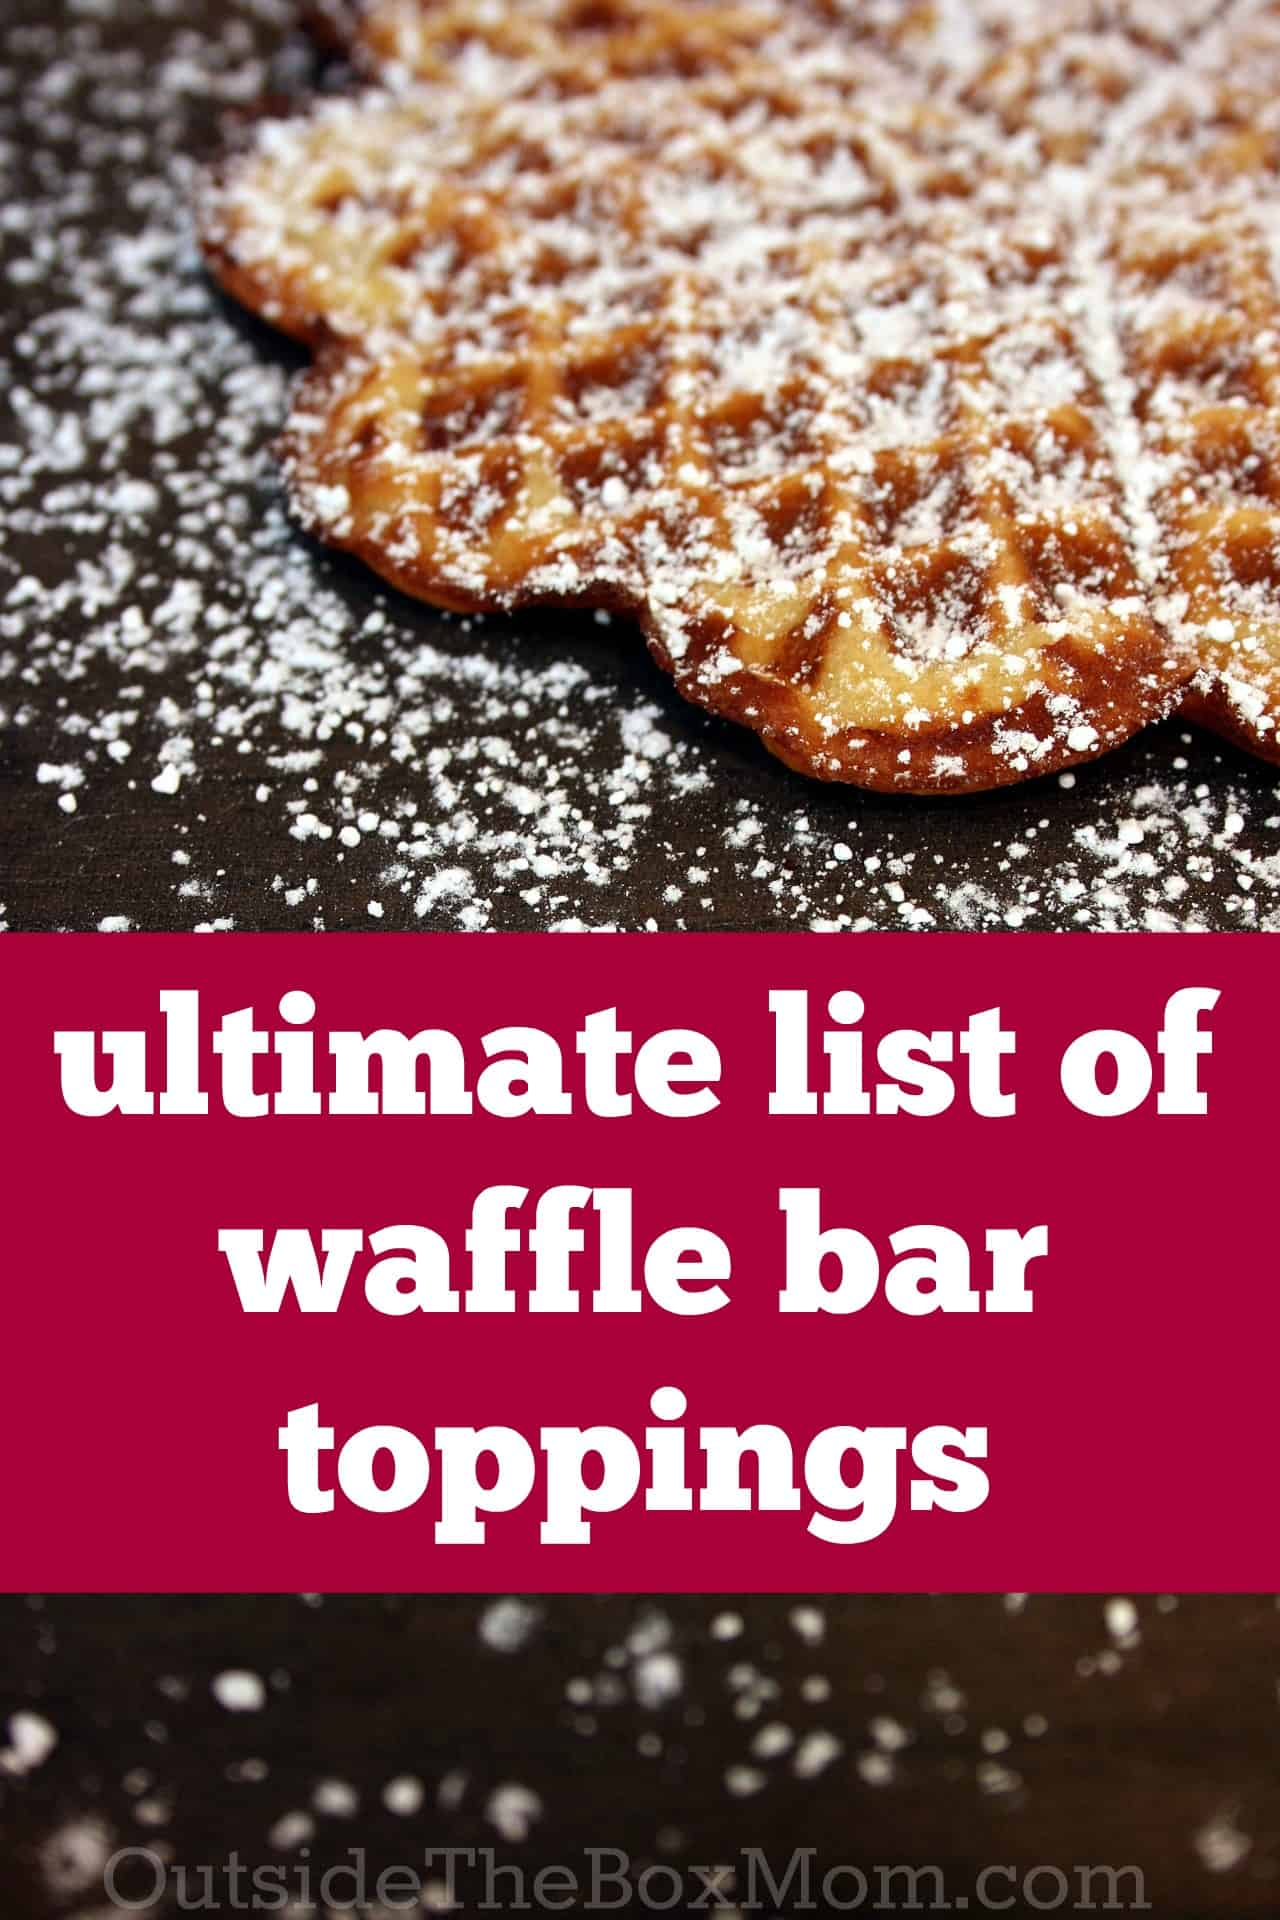 Chocolate Brownie Raspberry Trifle Sm furthermore D E Dbefea A Dc Ef D A as well Star Michelin Restaurants San Fransisco Saison together with Waffle Bar Toppings further D A Dfbf B. on how do you make chocolate